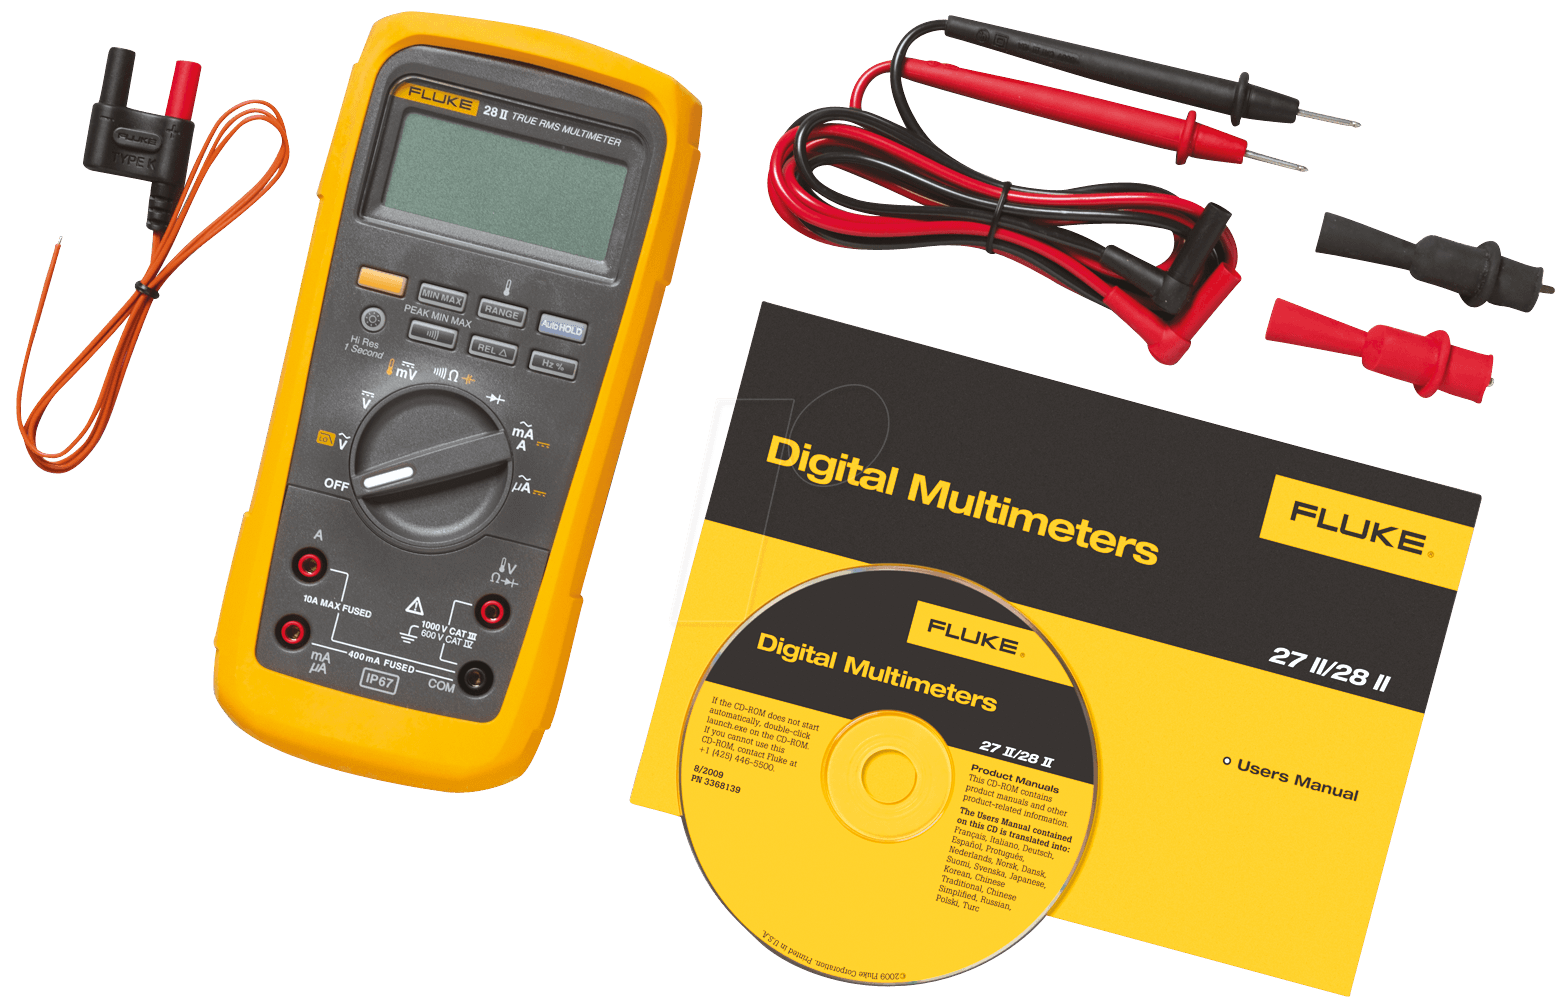 fluke 28ii multimeter 28 ii digital 19999 counts f r industrie bei reichelt elektronik. Black Bedroom Furniture Sets. Home Design Ideas